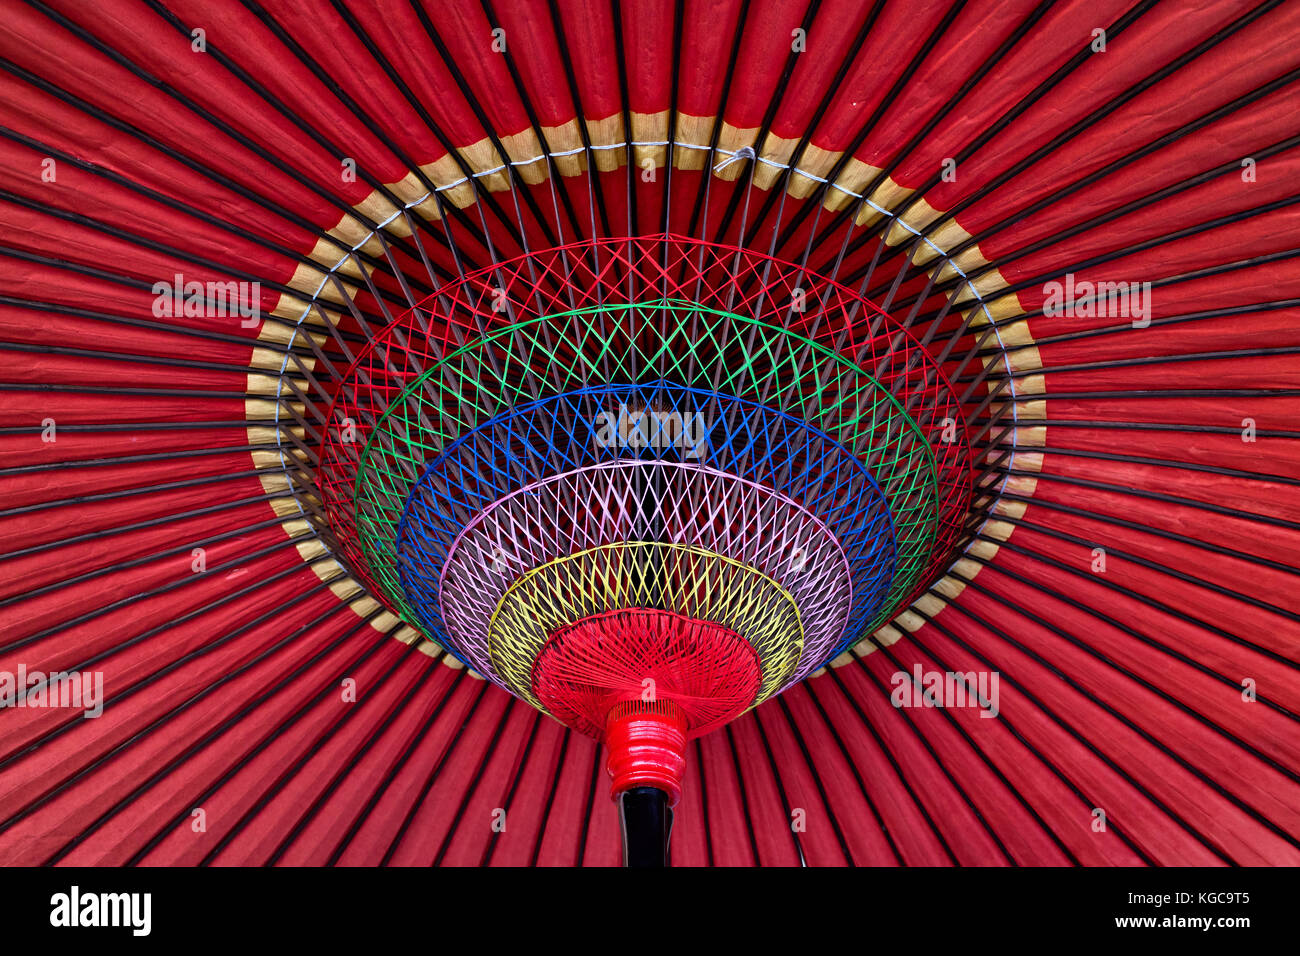 Details of a traditional colorful Japanese parasol - Stock Image